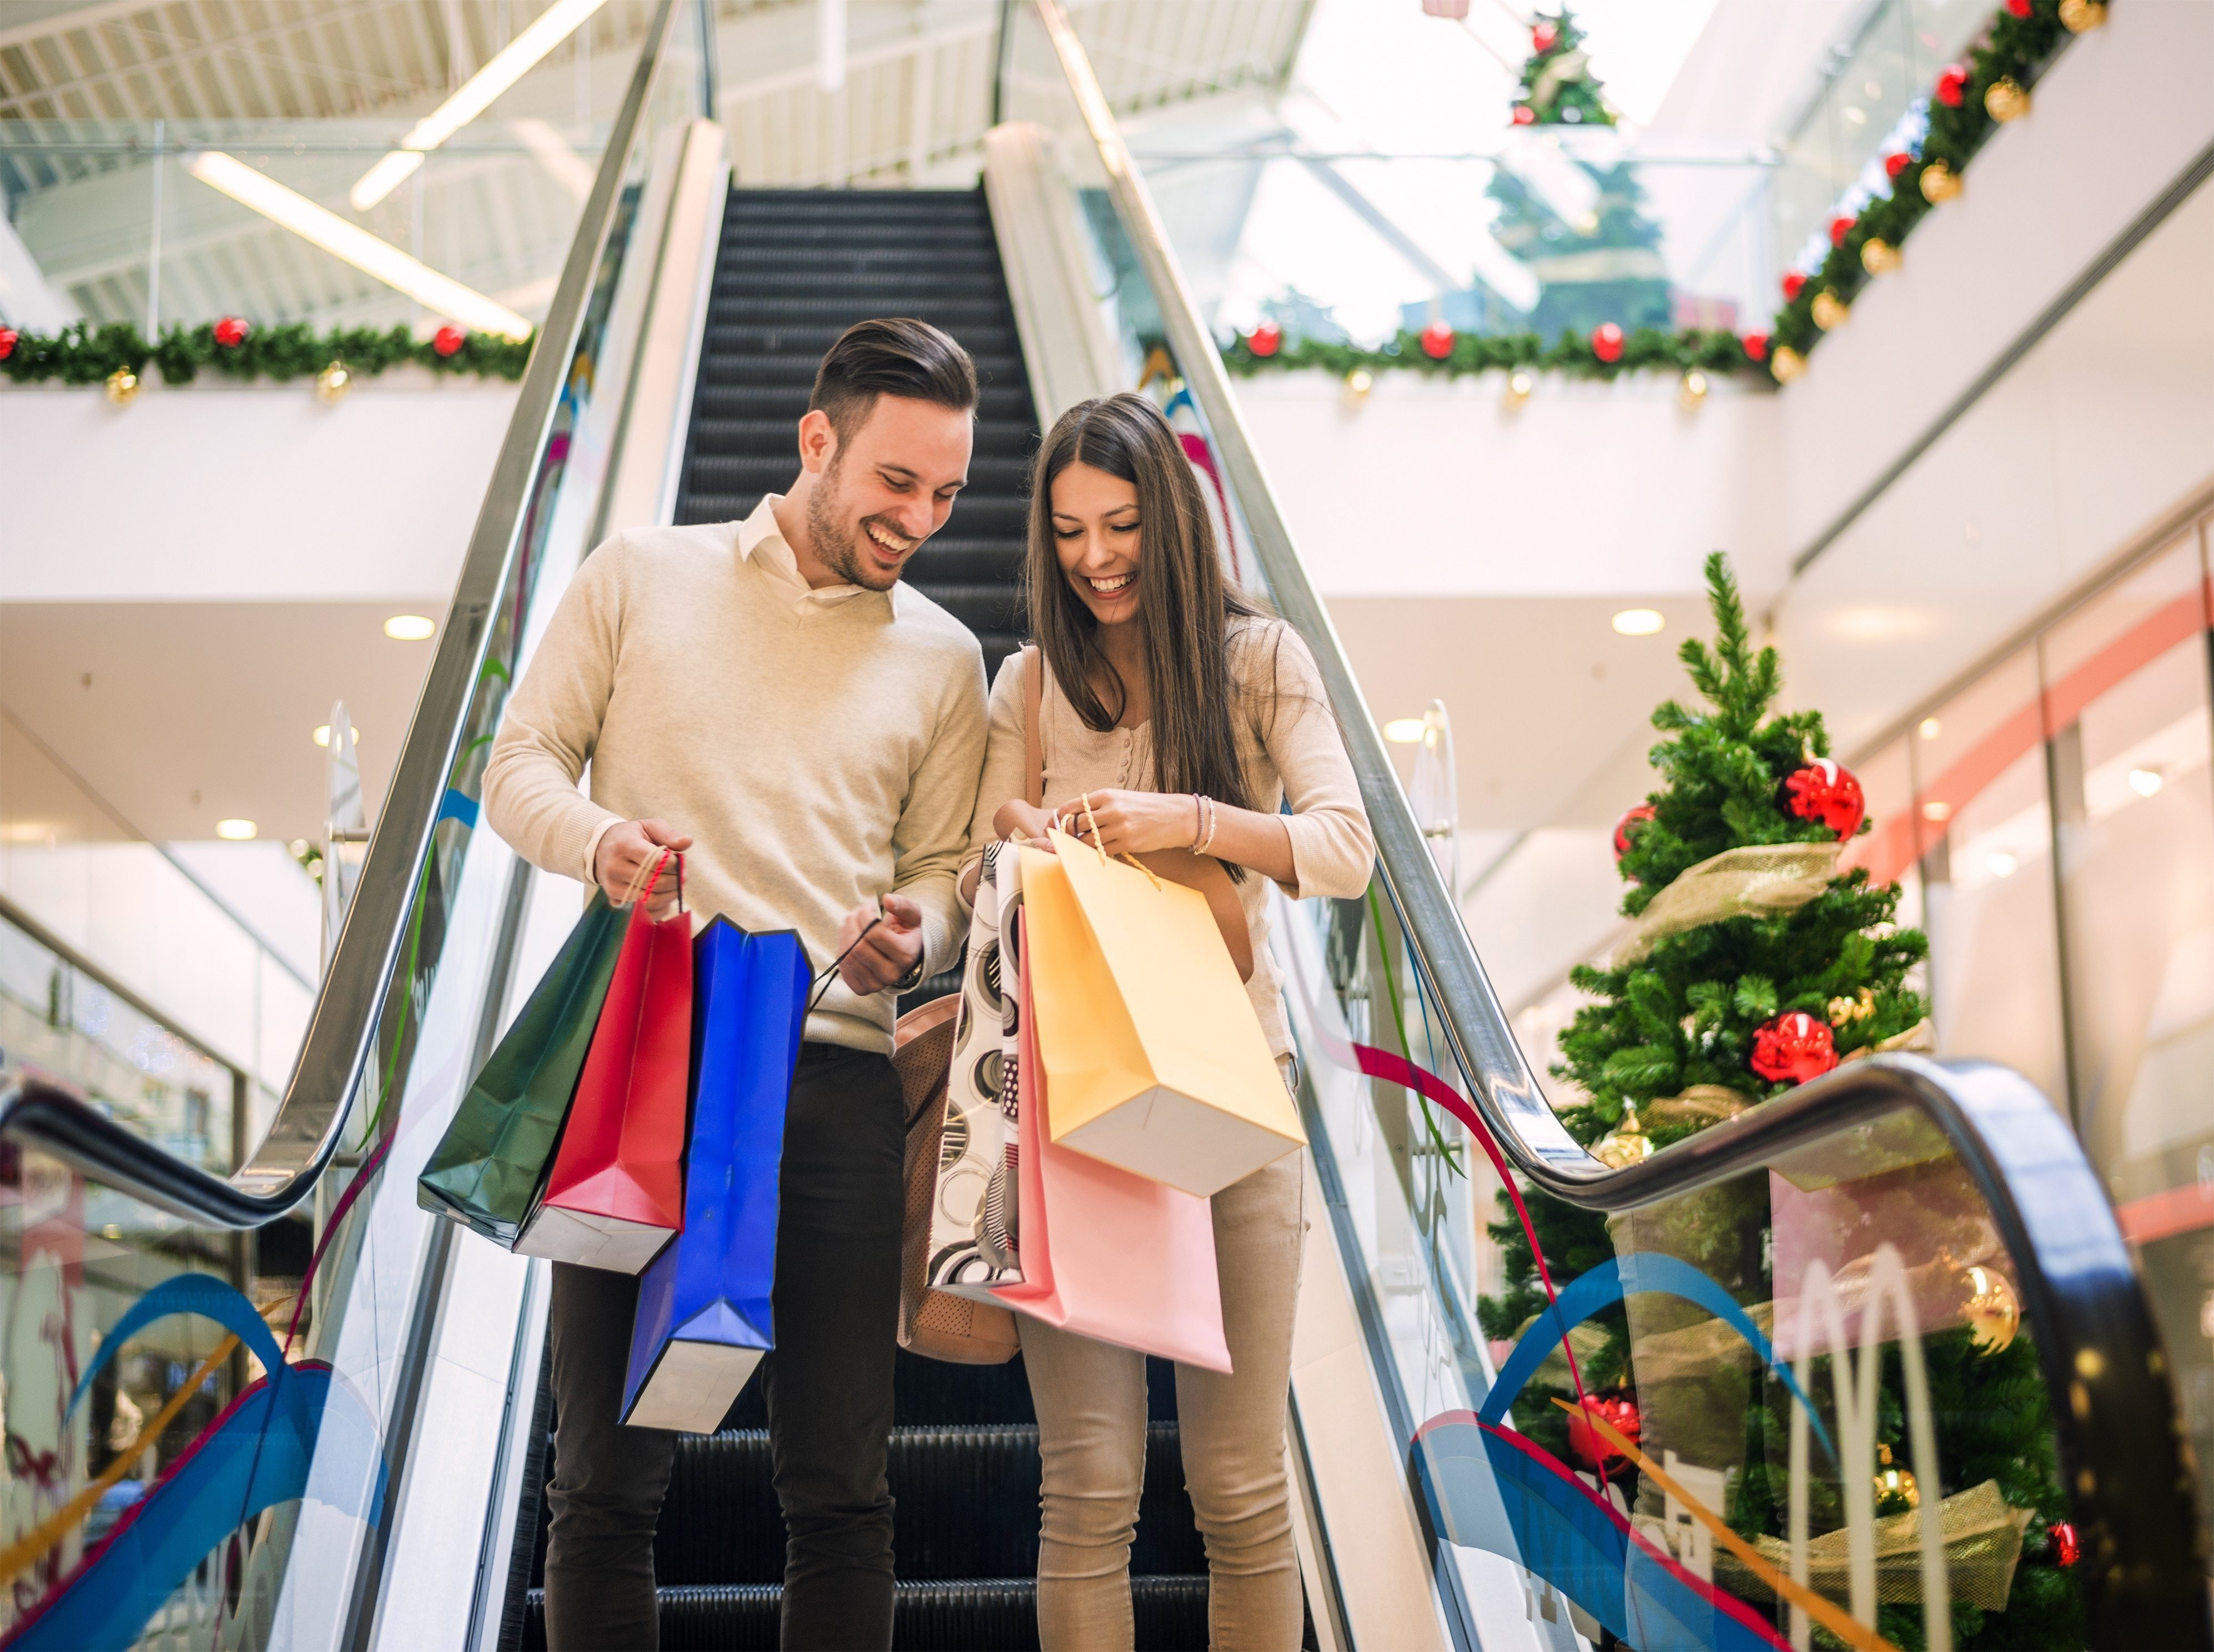 8 Things Polite People Don't Do While Christmas Shopping